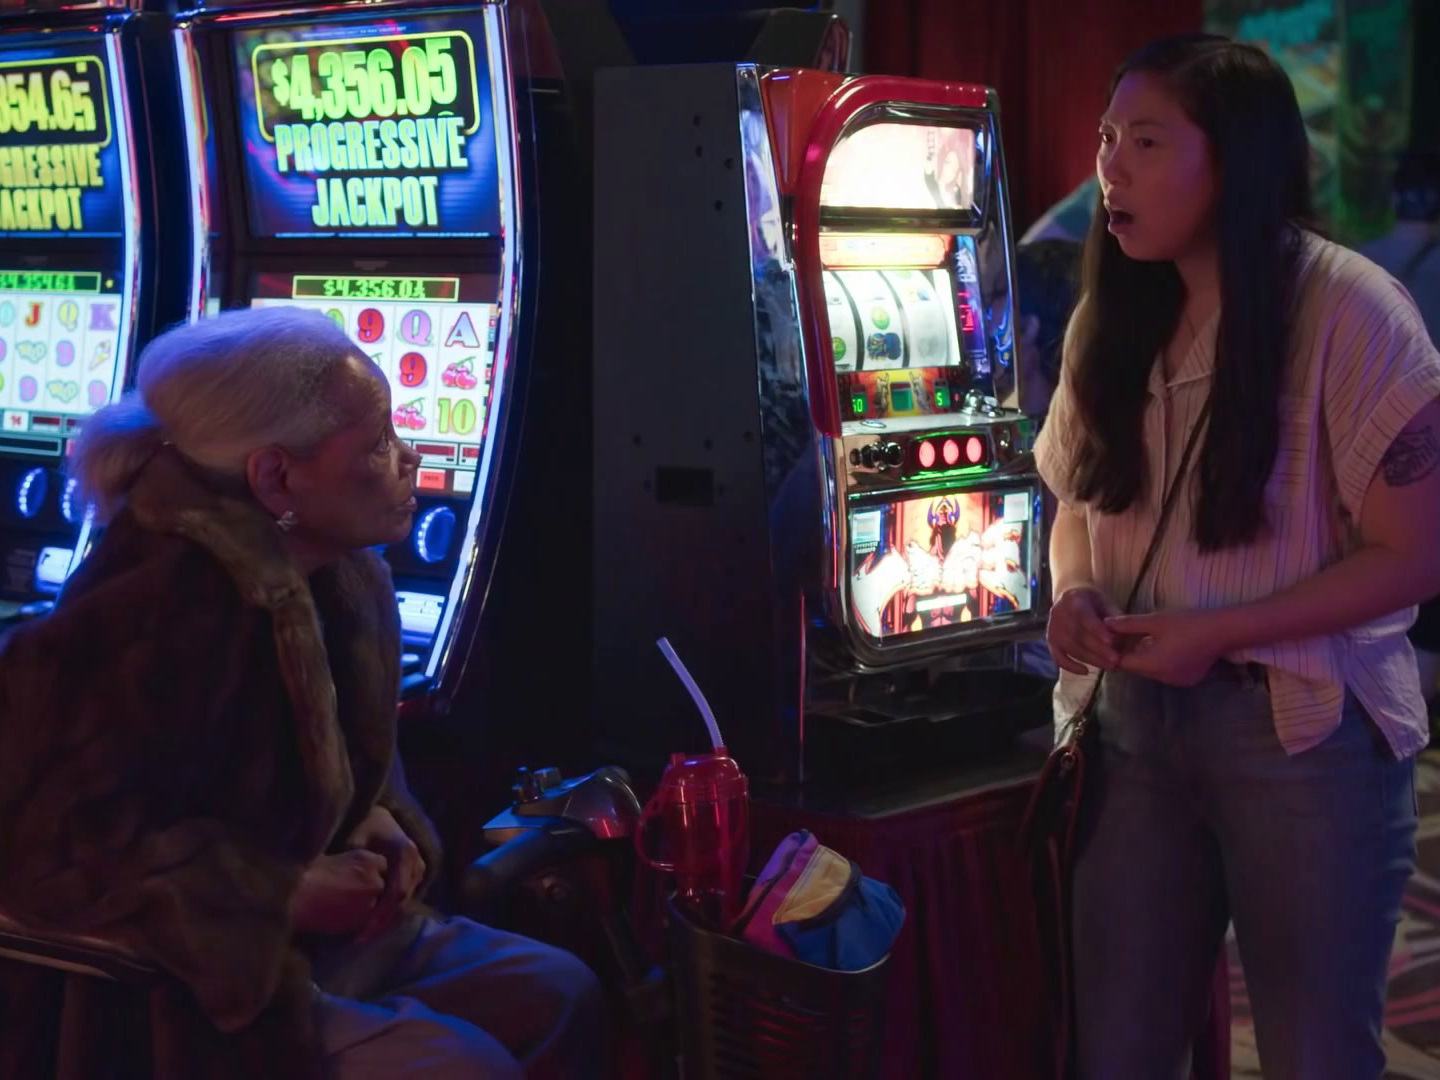 Awkwafina is Nora from Queens: Wait, Drinks Are Free at a Casino